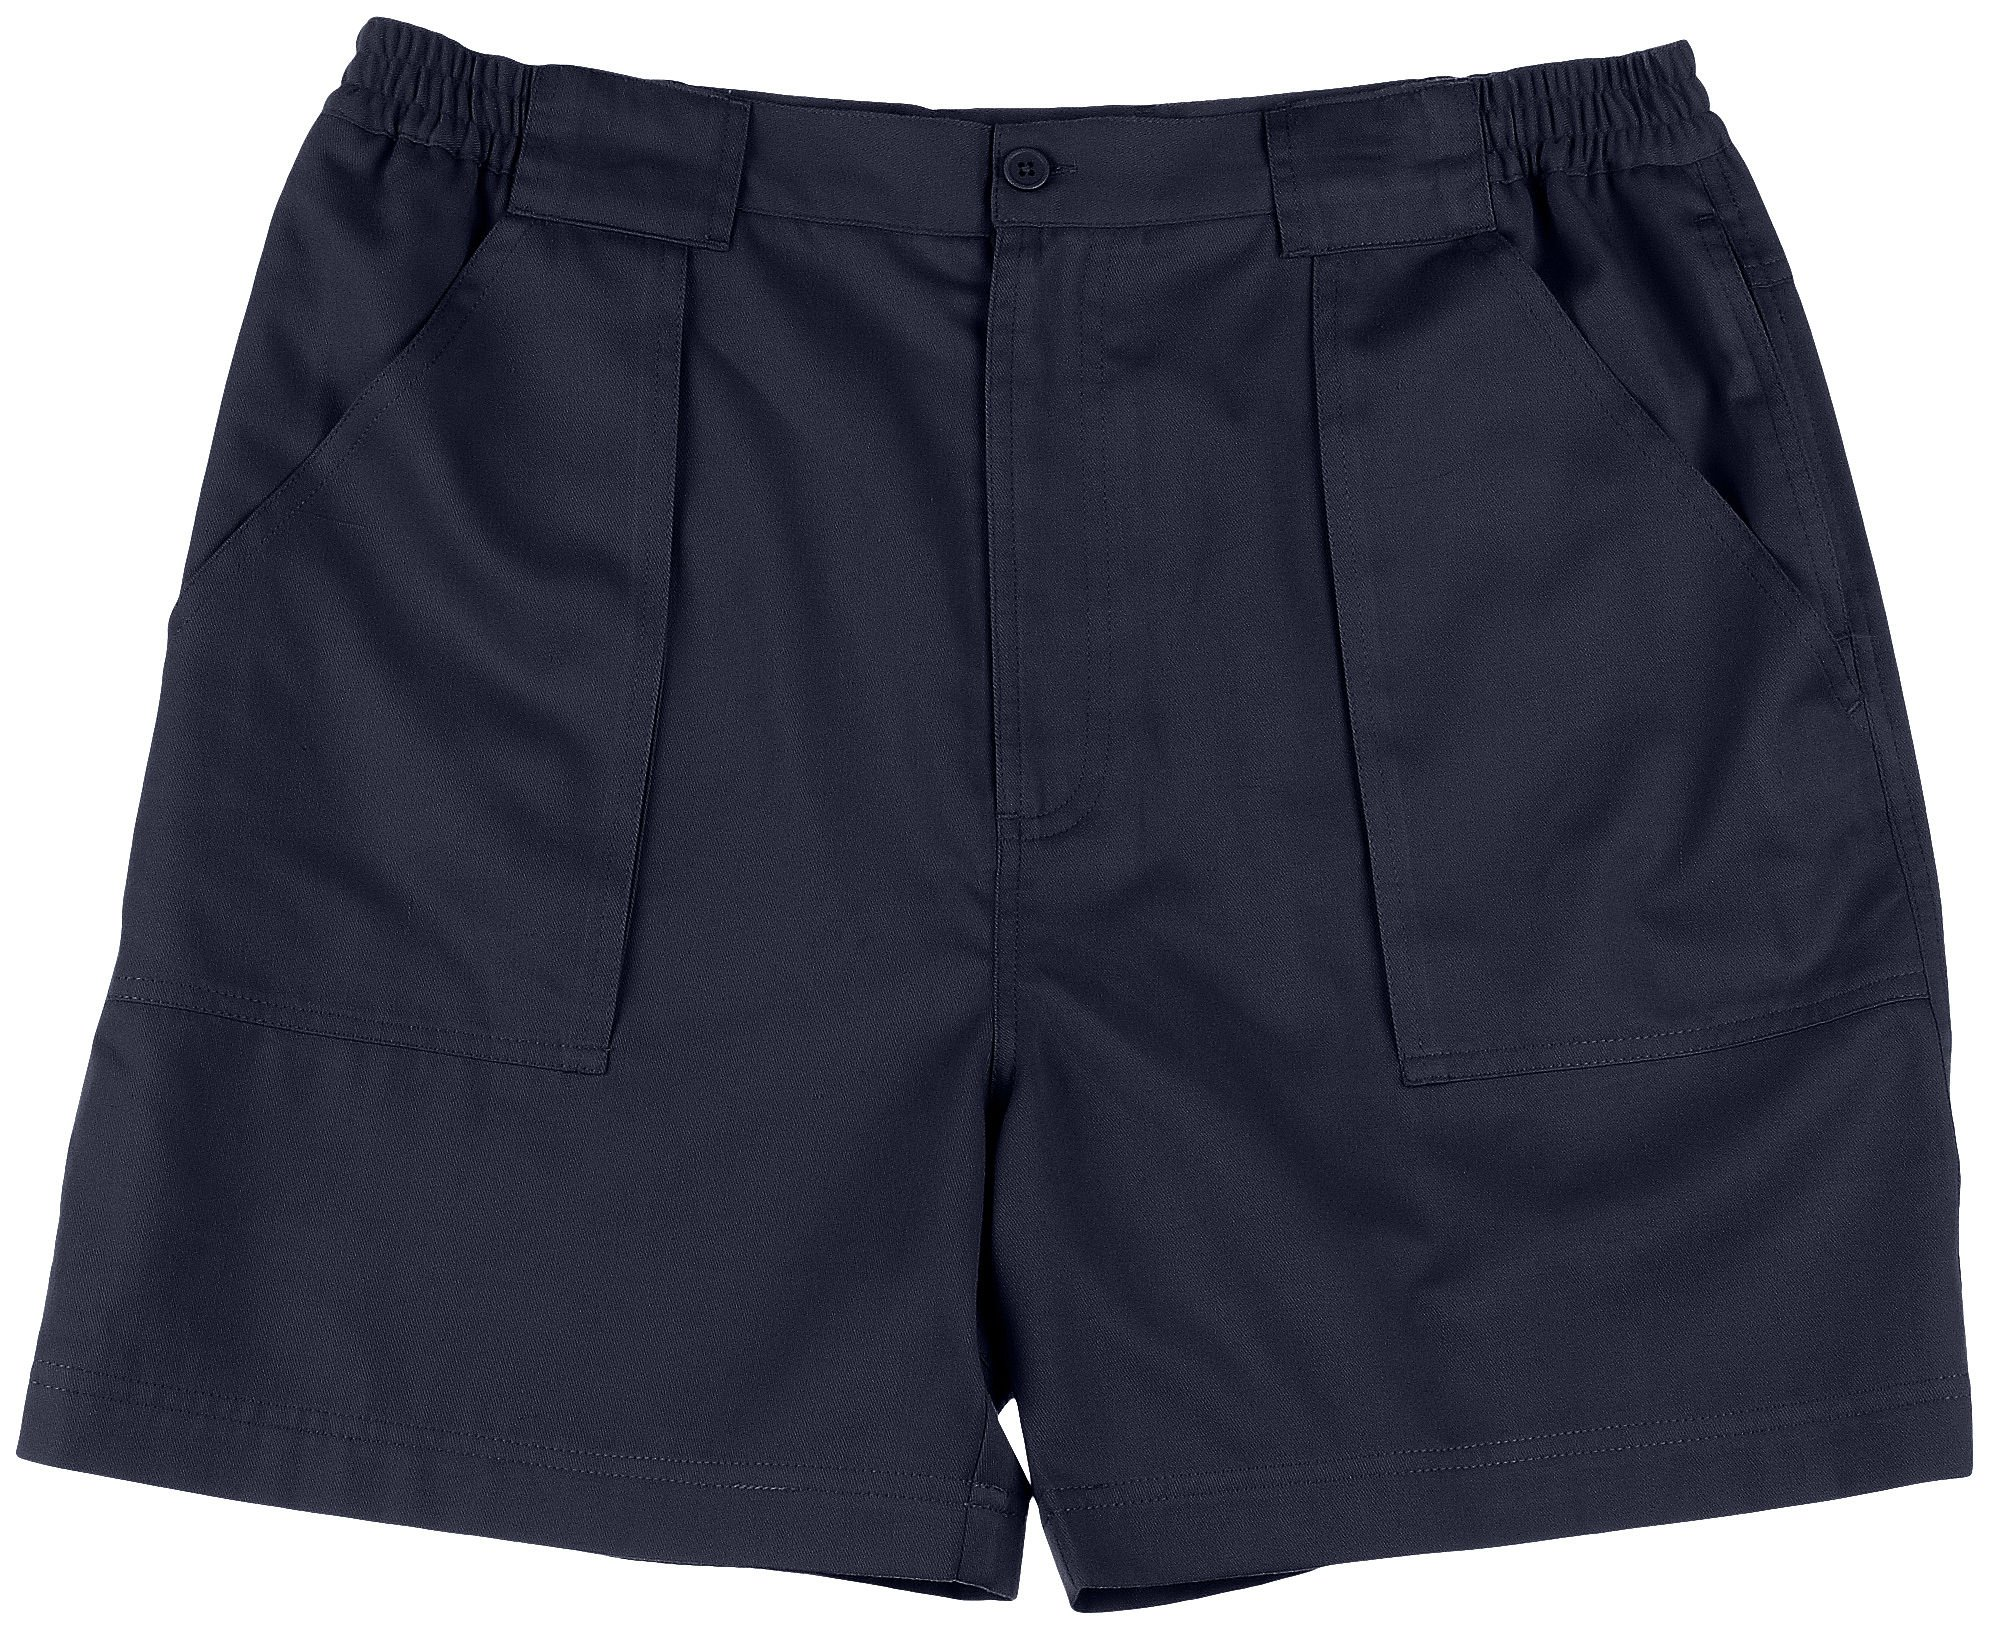 Windham Pointe Mens Side Elastic Swiss Army Shorts 34W Peacoat navy